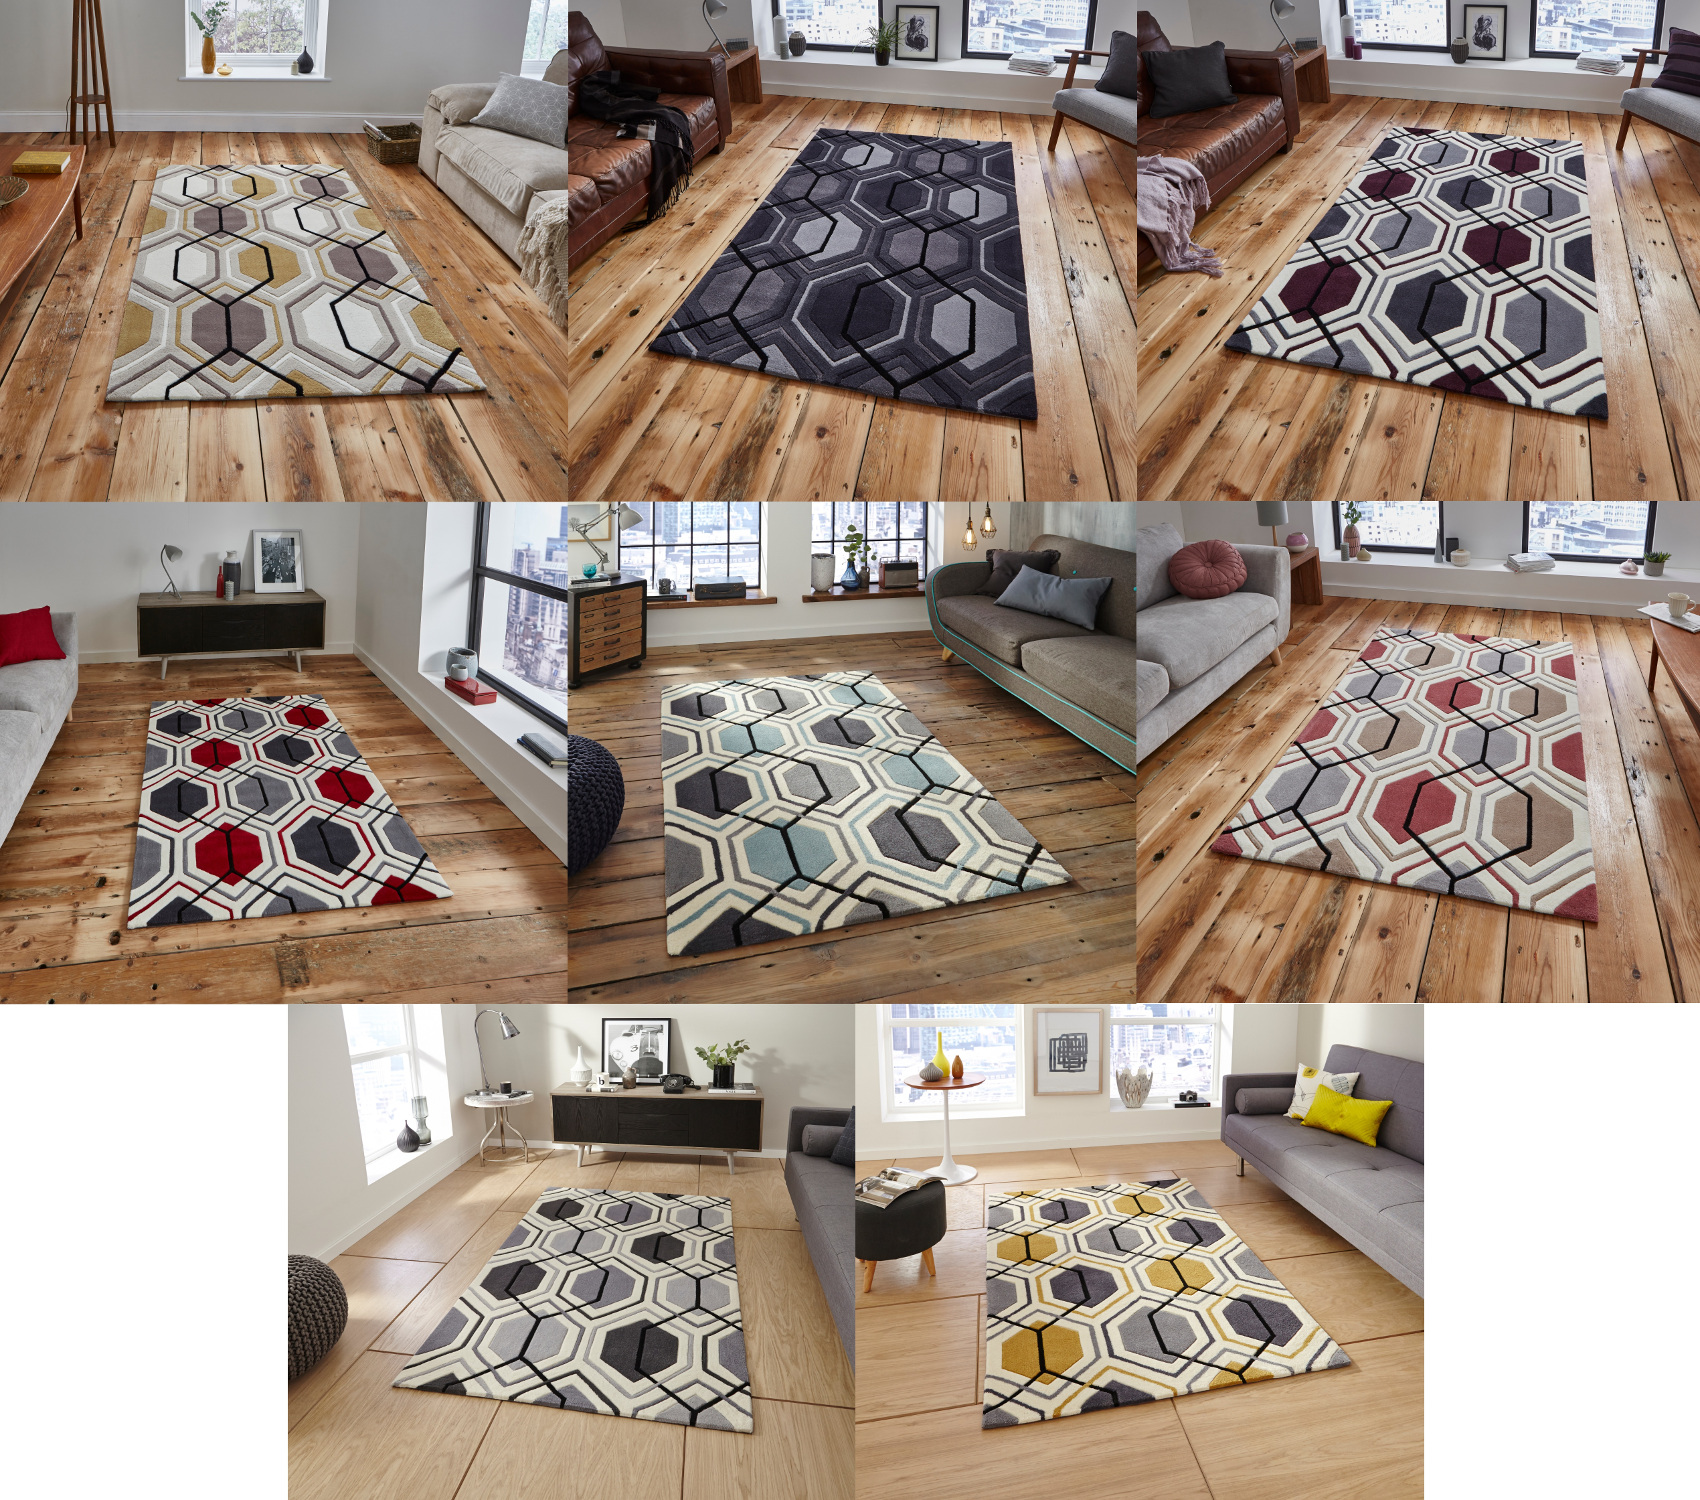 Hong kong hexagon rug 100 acrylic hand tufted large for 007 room decor